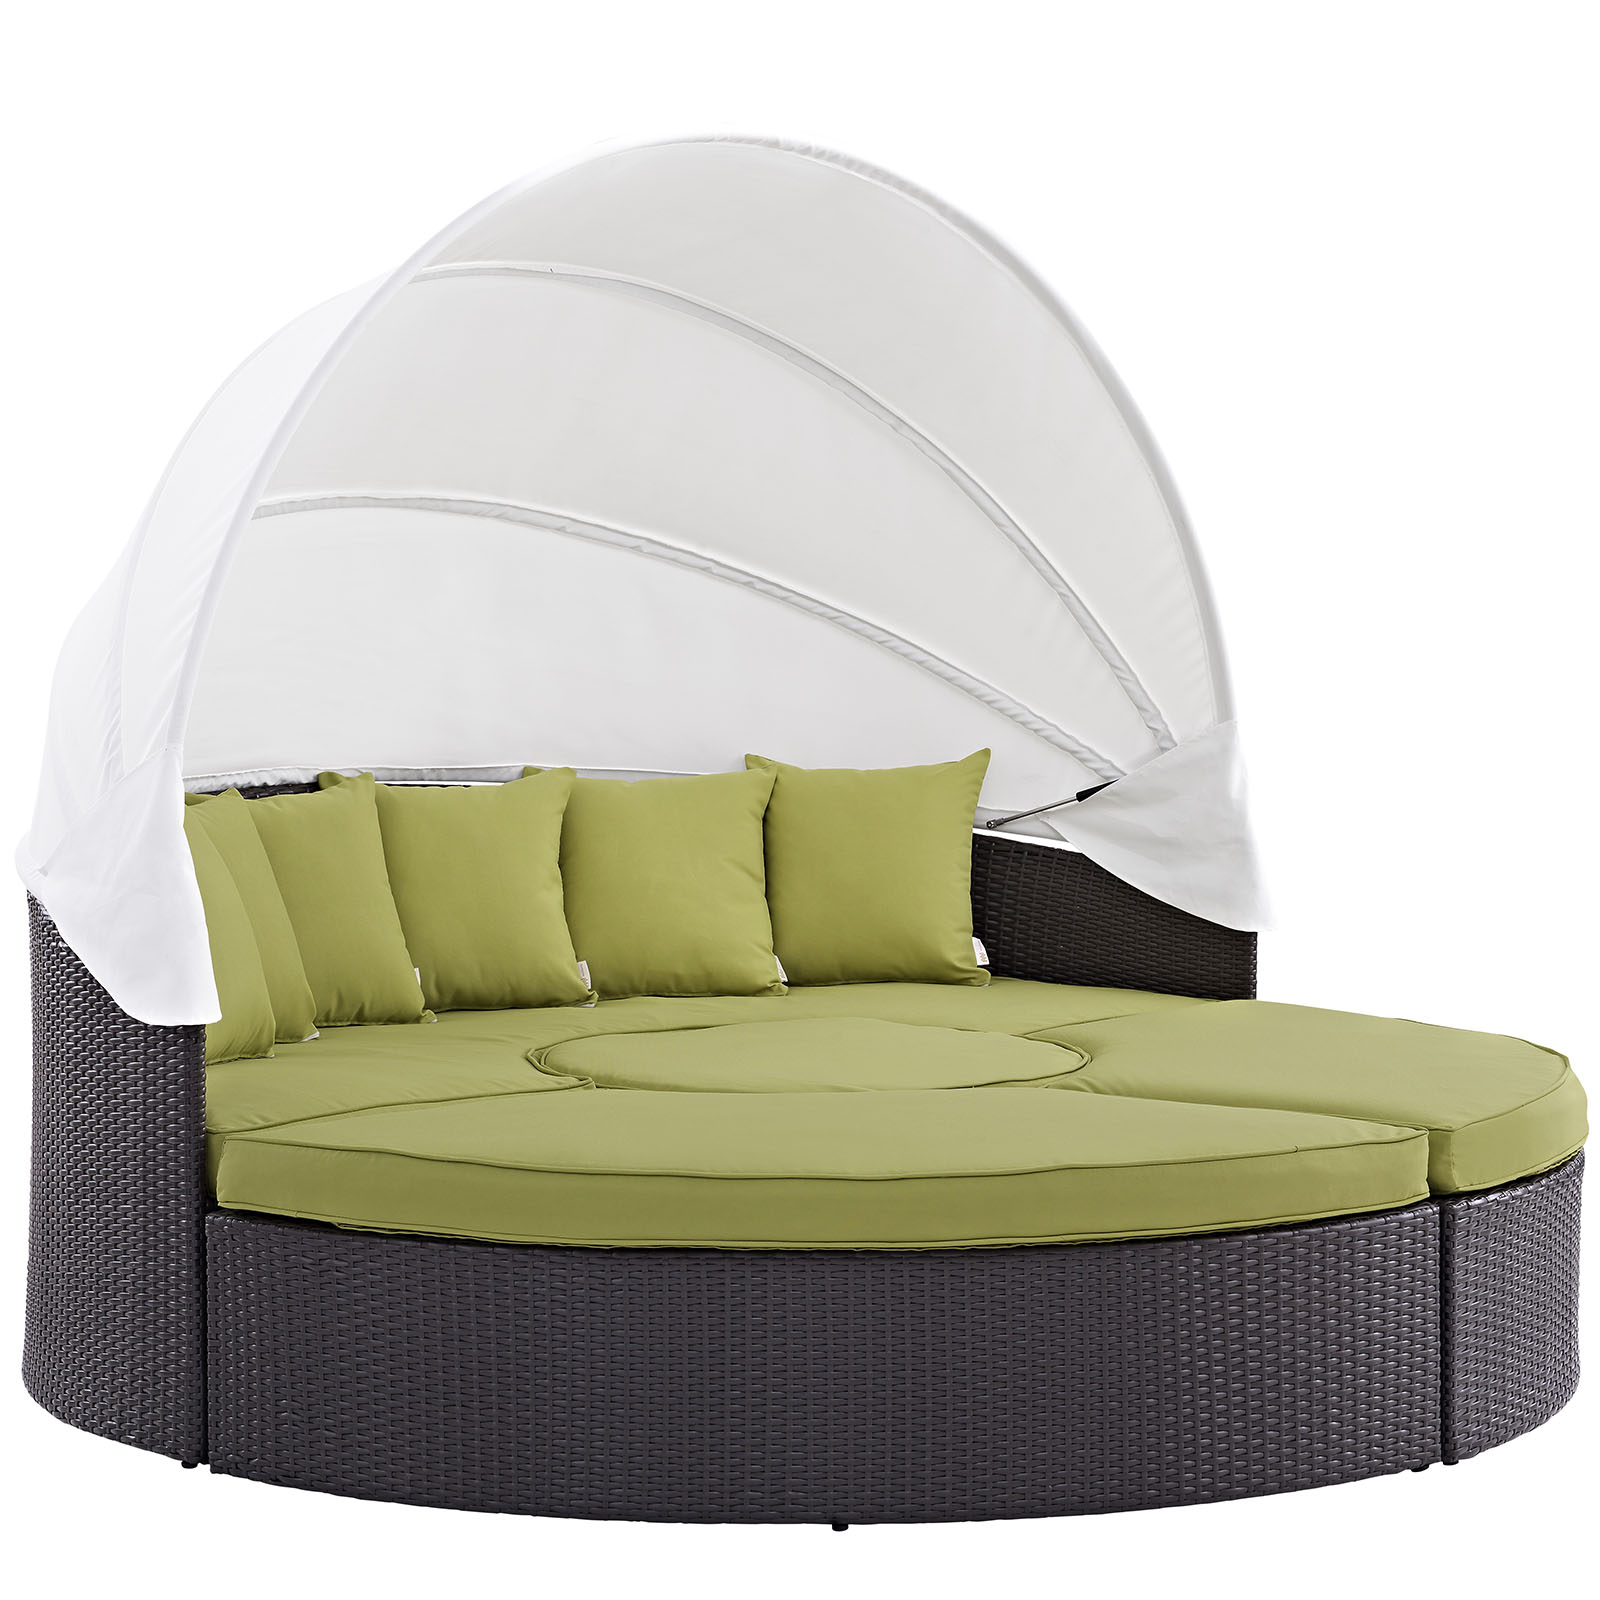 Modway Convene 5 Piece Canopy Outdoor Patio Daybed, Multiple Colors    Walmart.com